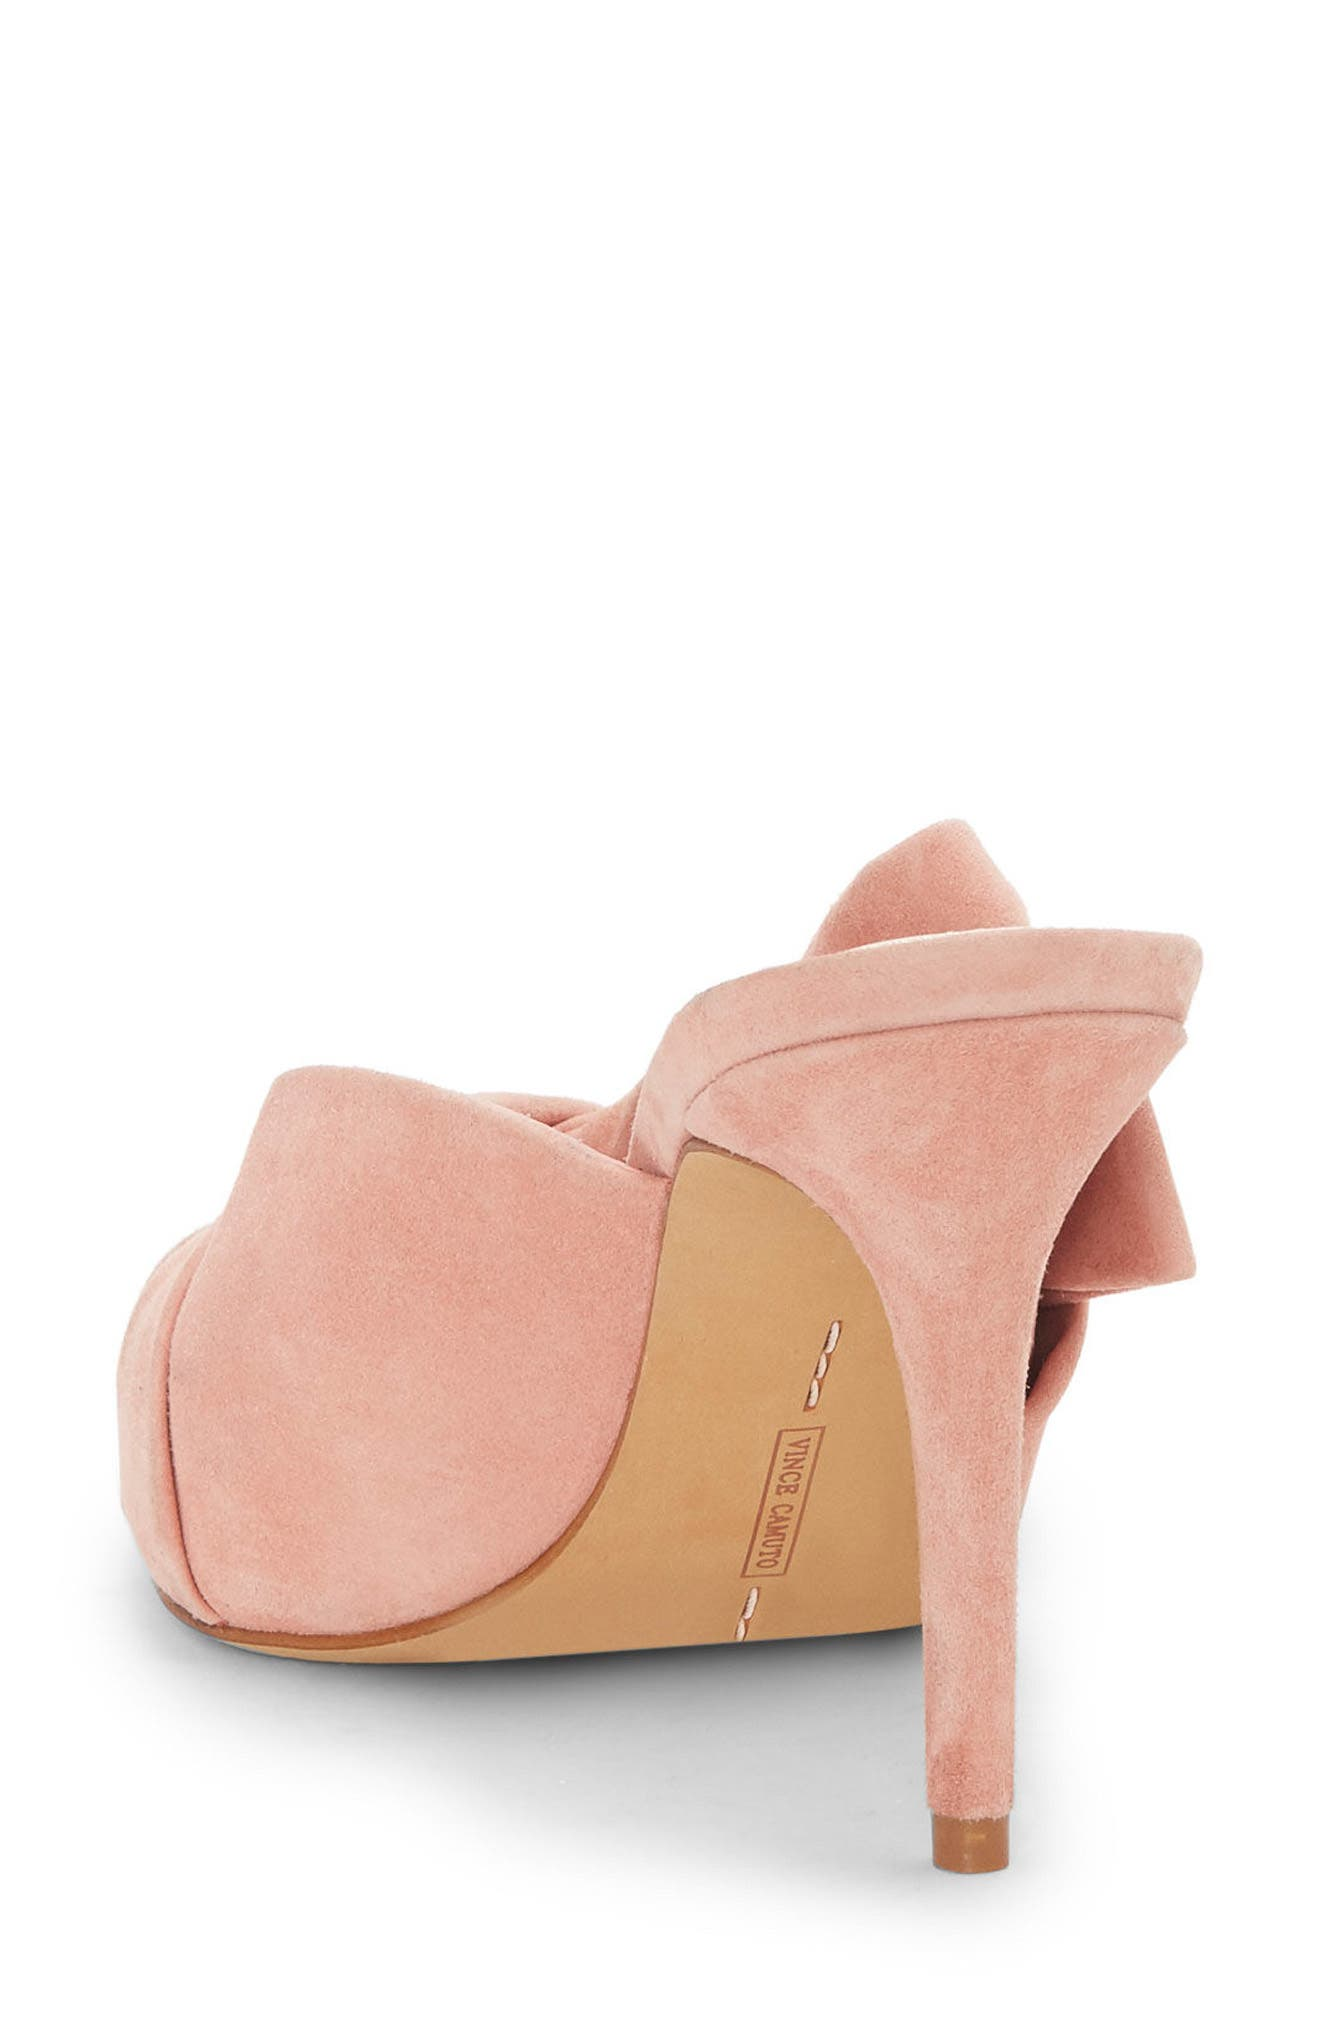 Amillada Pump,                             Alternate thumbnail 2, color,                             Rose Bud Suede